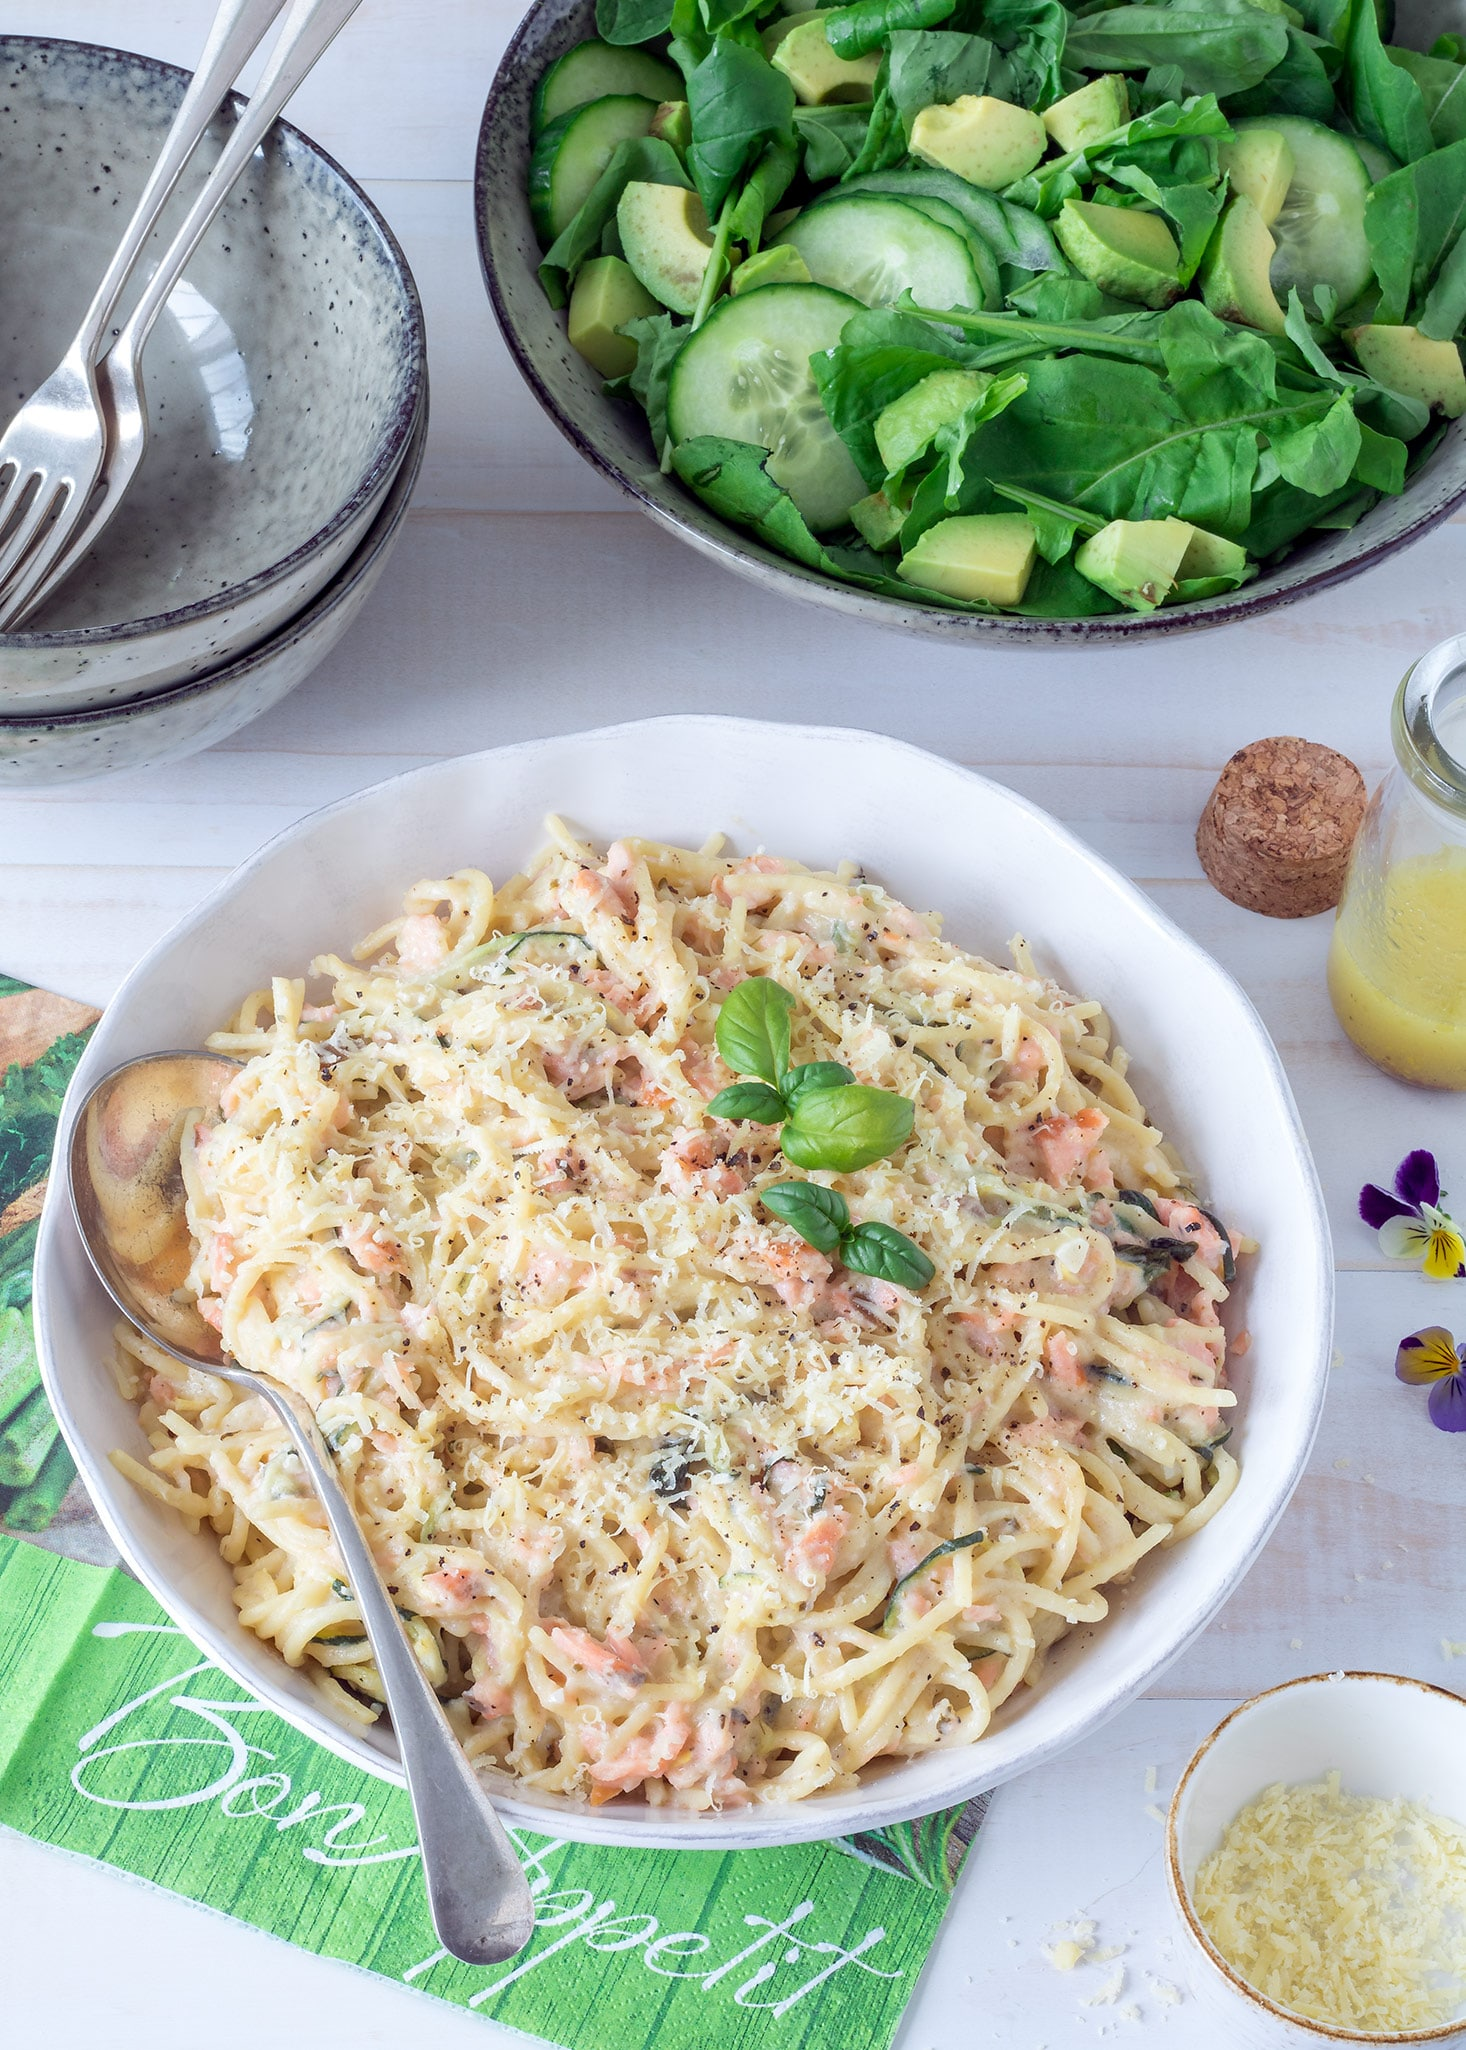 This easy smoked salmon spaghetti is luxurious without being too unhealthy. Some of the spaghetti is substituted for courgette and only a small amount of cream is used. Ready in under 30 minutes!